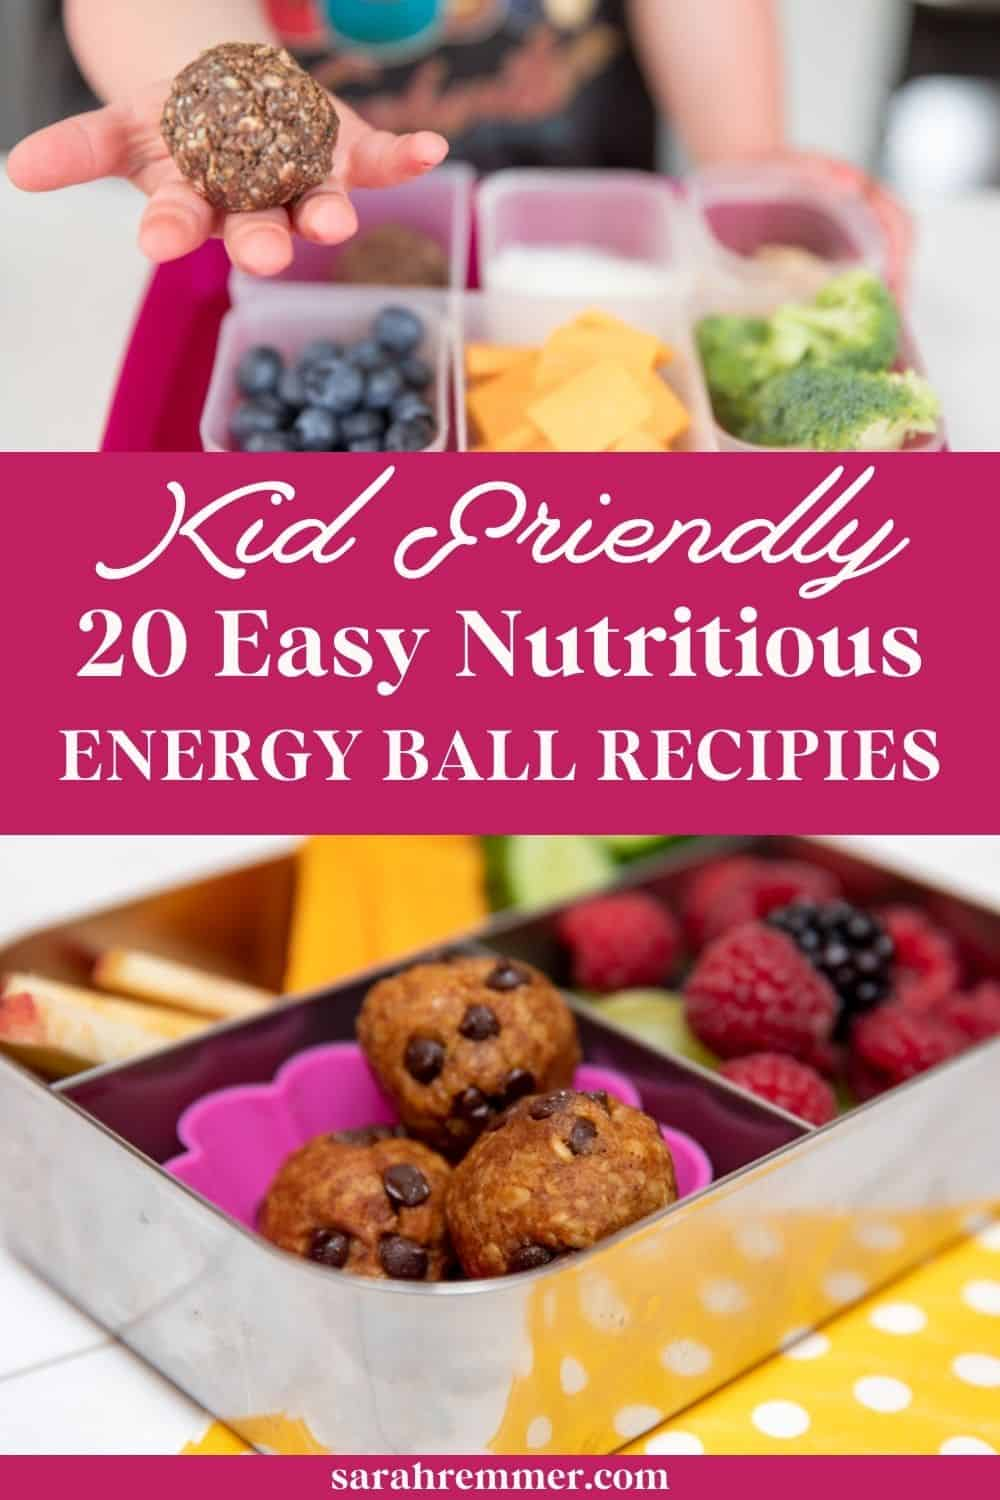 Energy balls are the perfect healthy, homemade snack for kids. To inspire you, here's 20 of my favourite energy protein ball recipes that kids love.